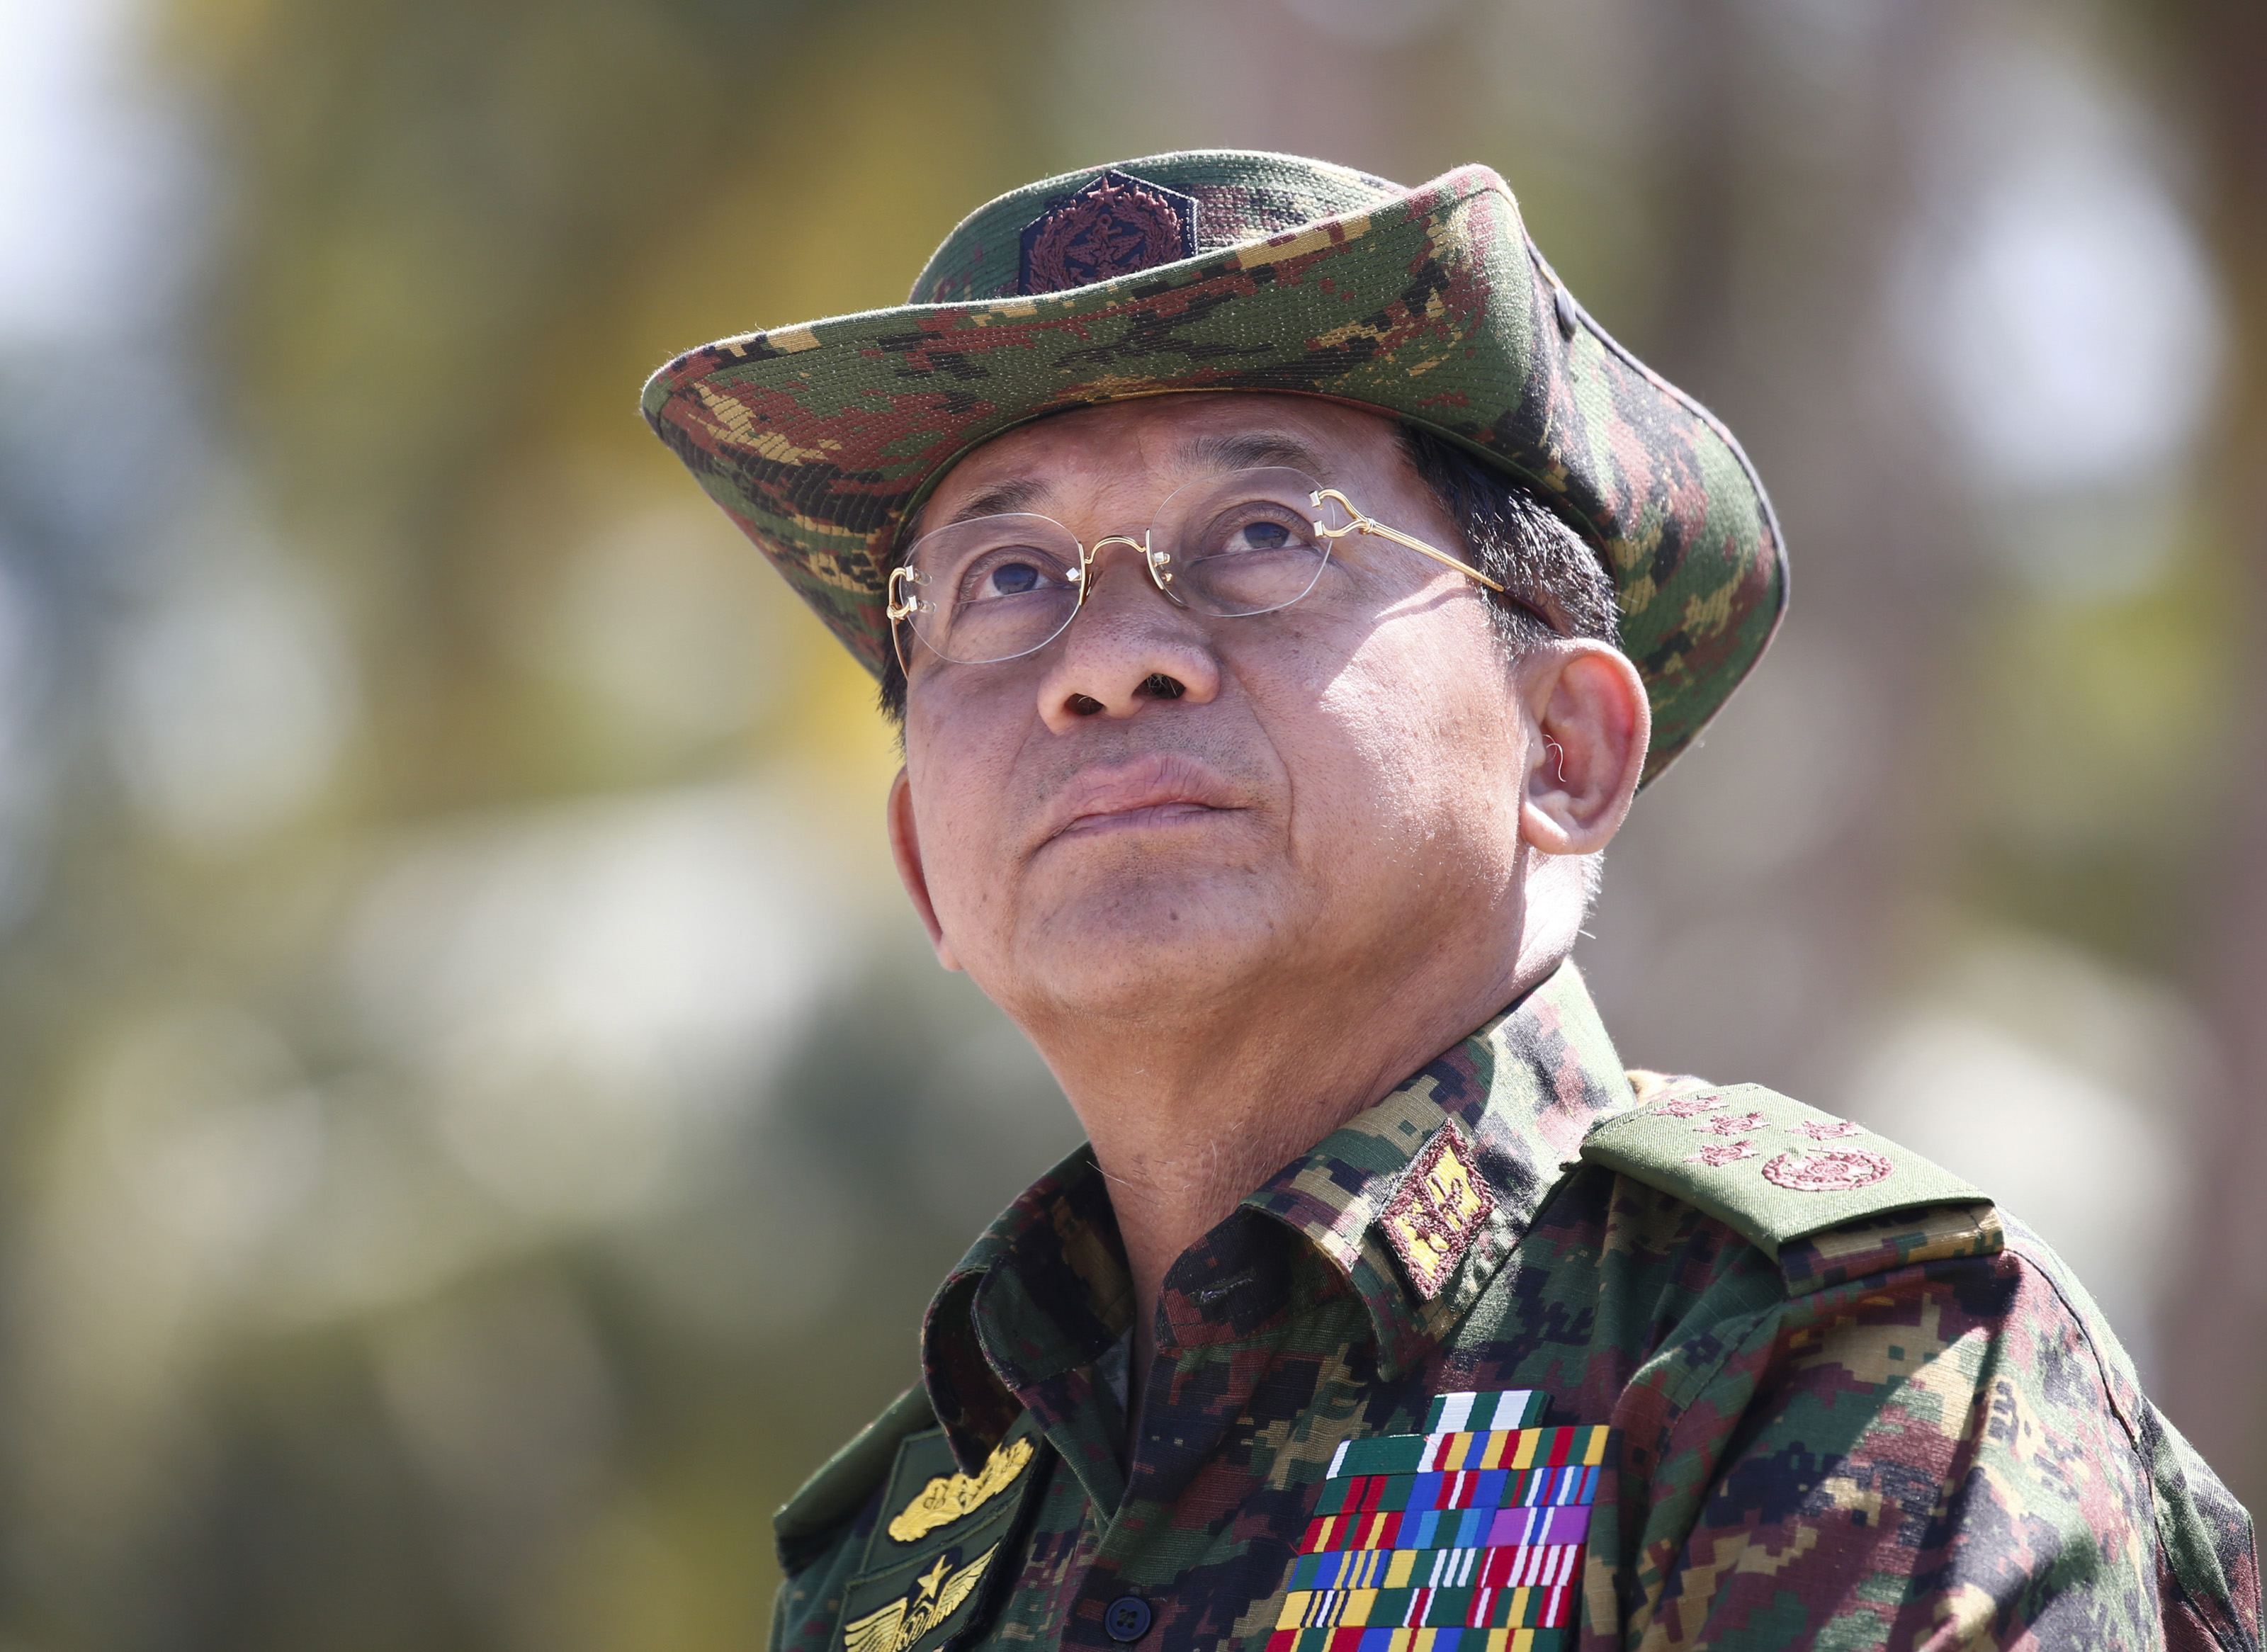 Myanmar military commander-in-chief Senior General Min Aung Hlaing speaks during the second day of 'Sin Phyu Shin' joint military exercises in the Ayeyarwaddy delta region on Feb. 3, 2018.